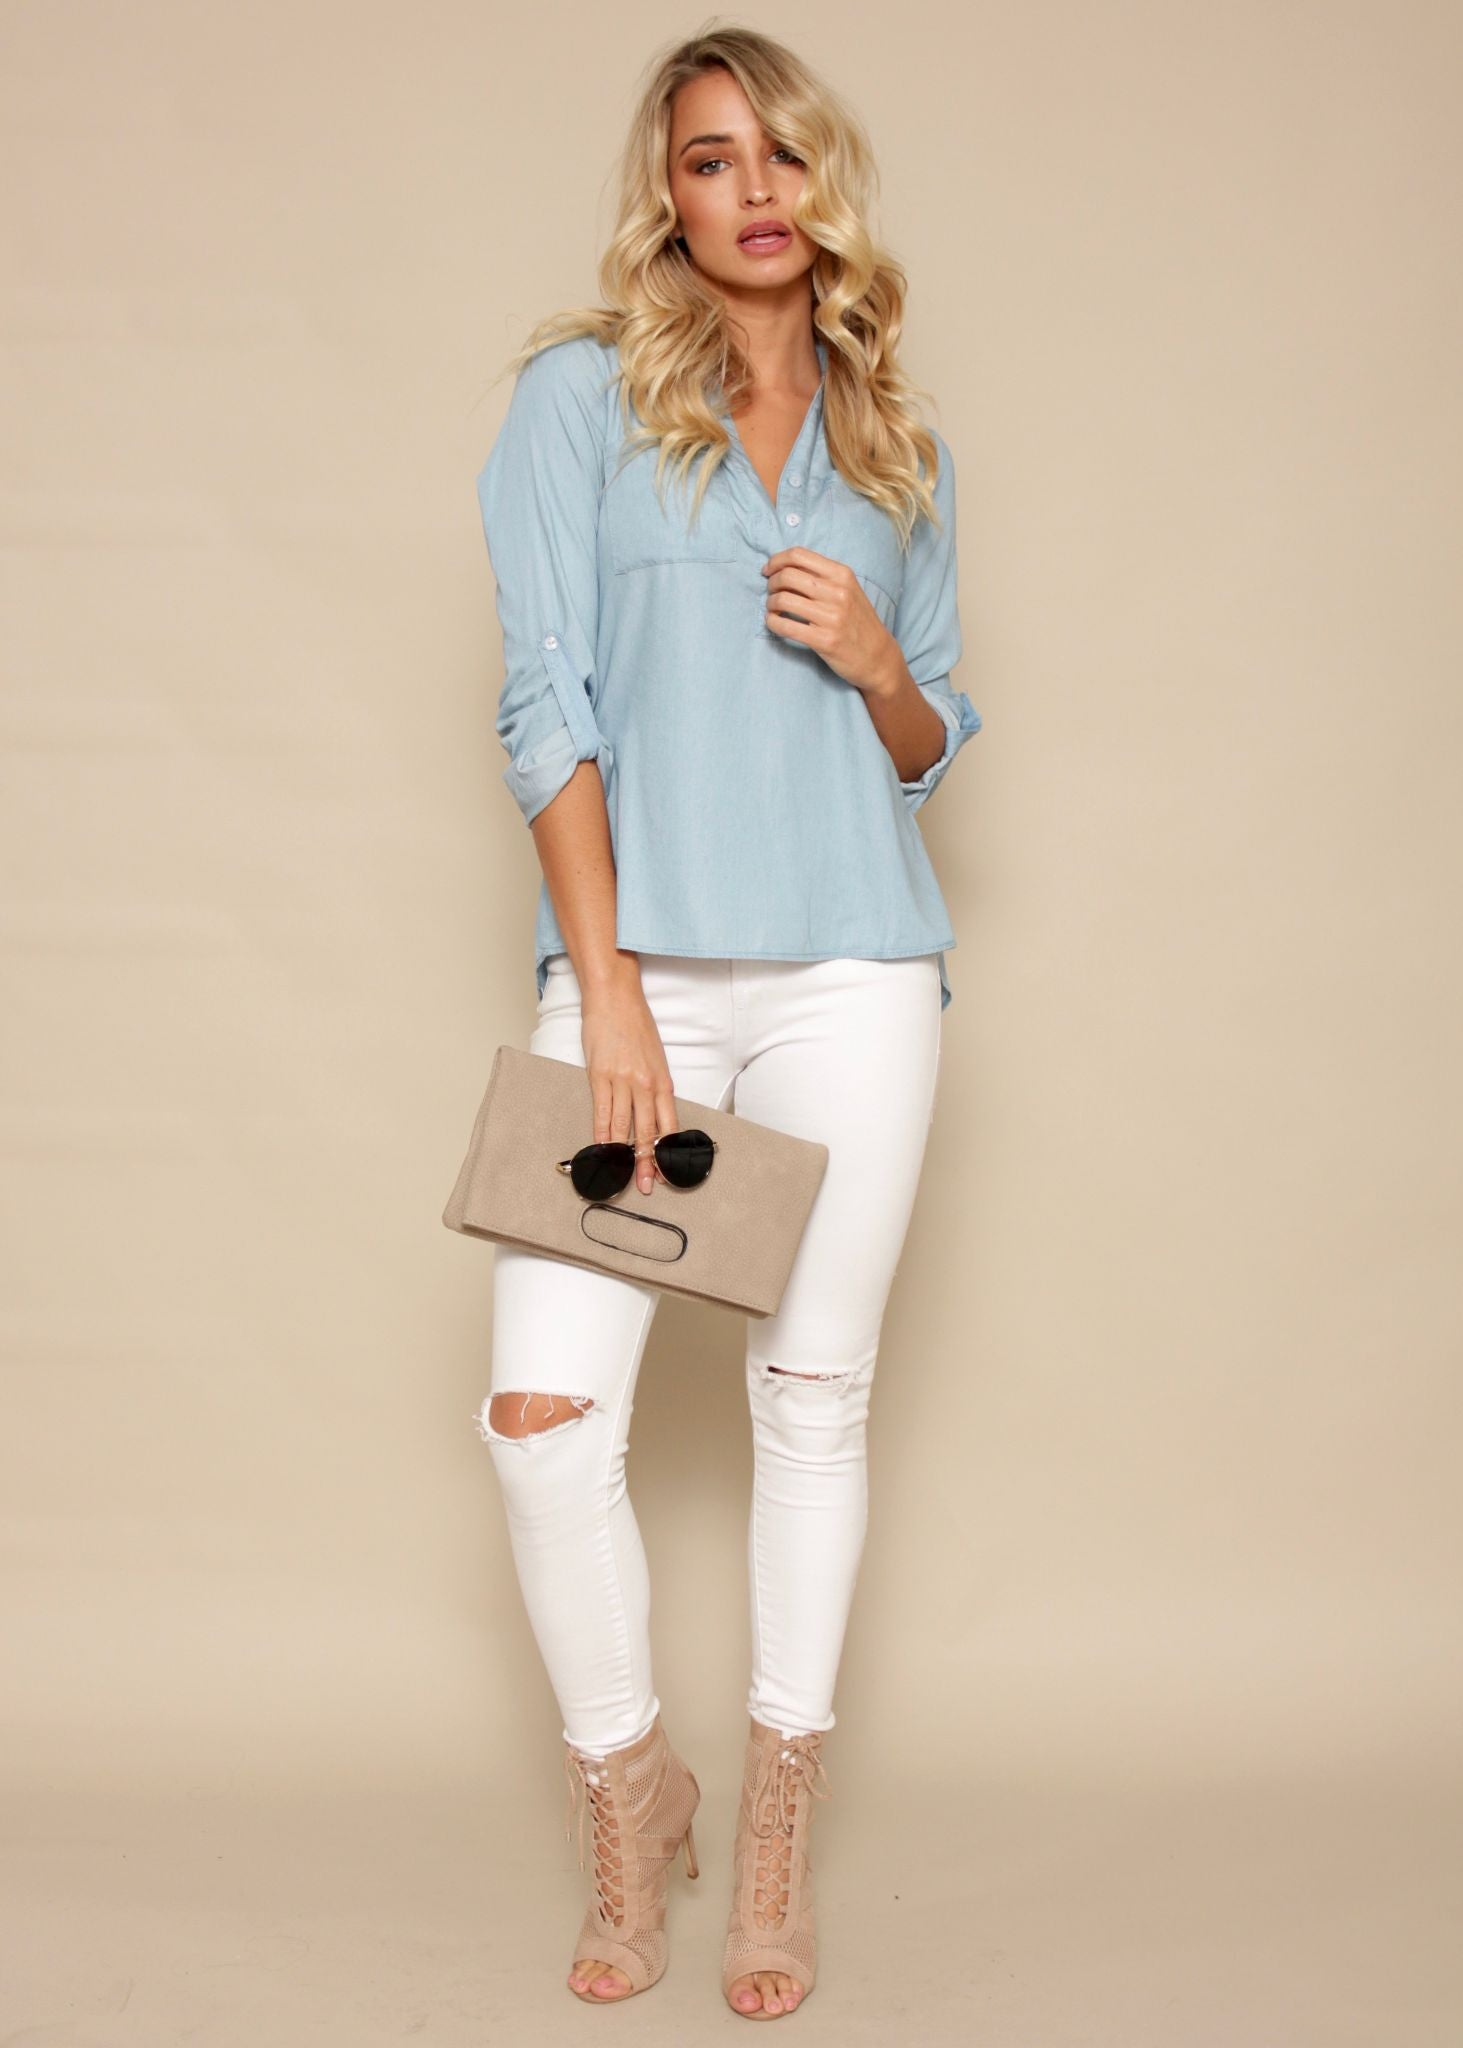 With You Blouse - Denim Wash